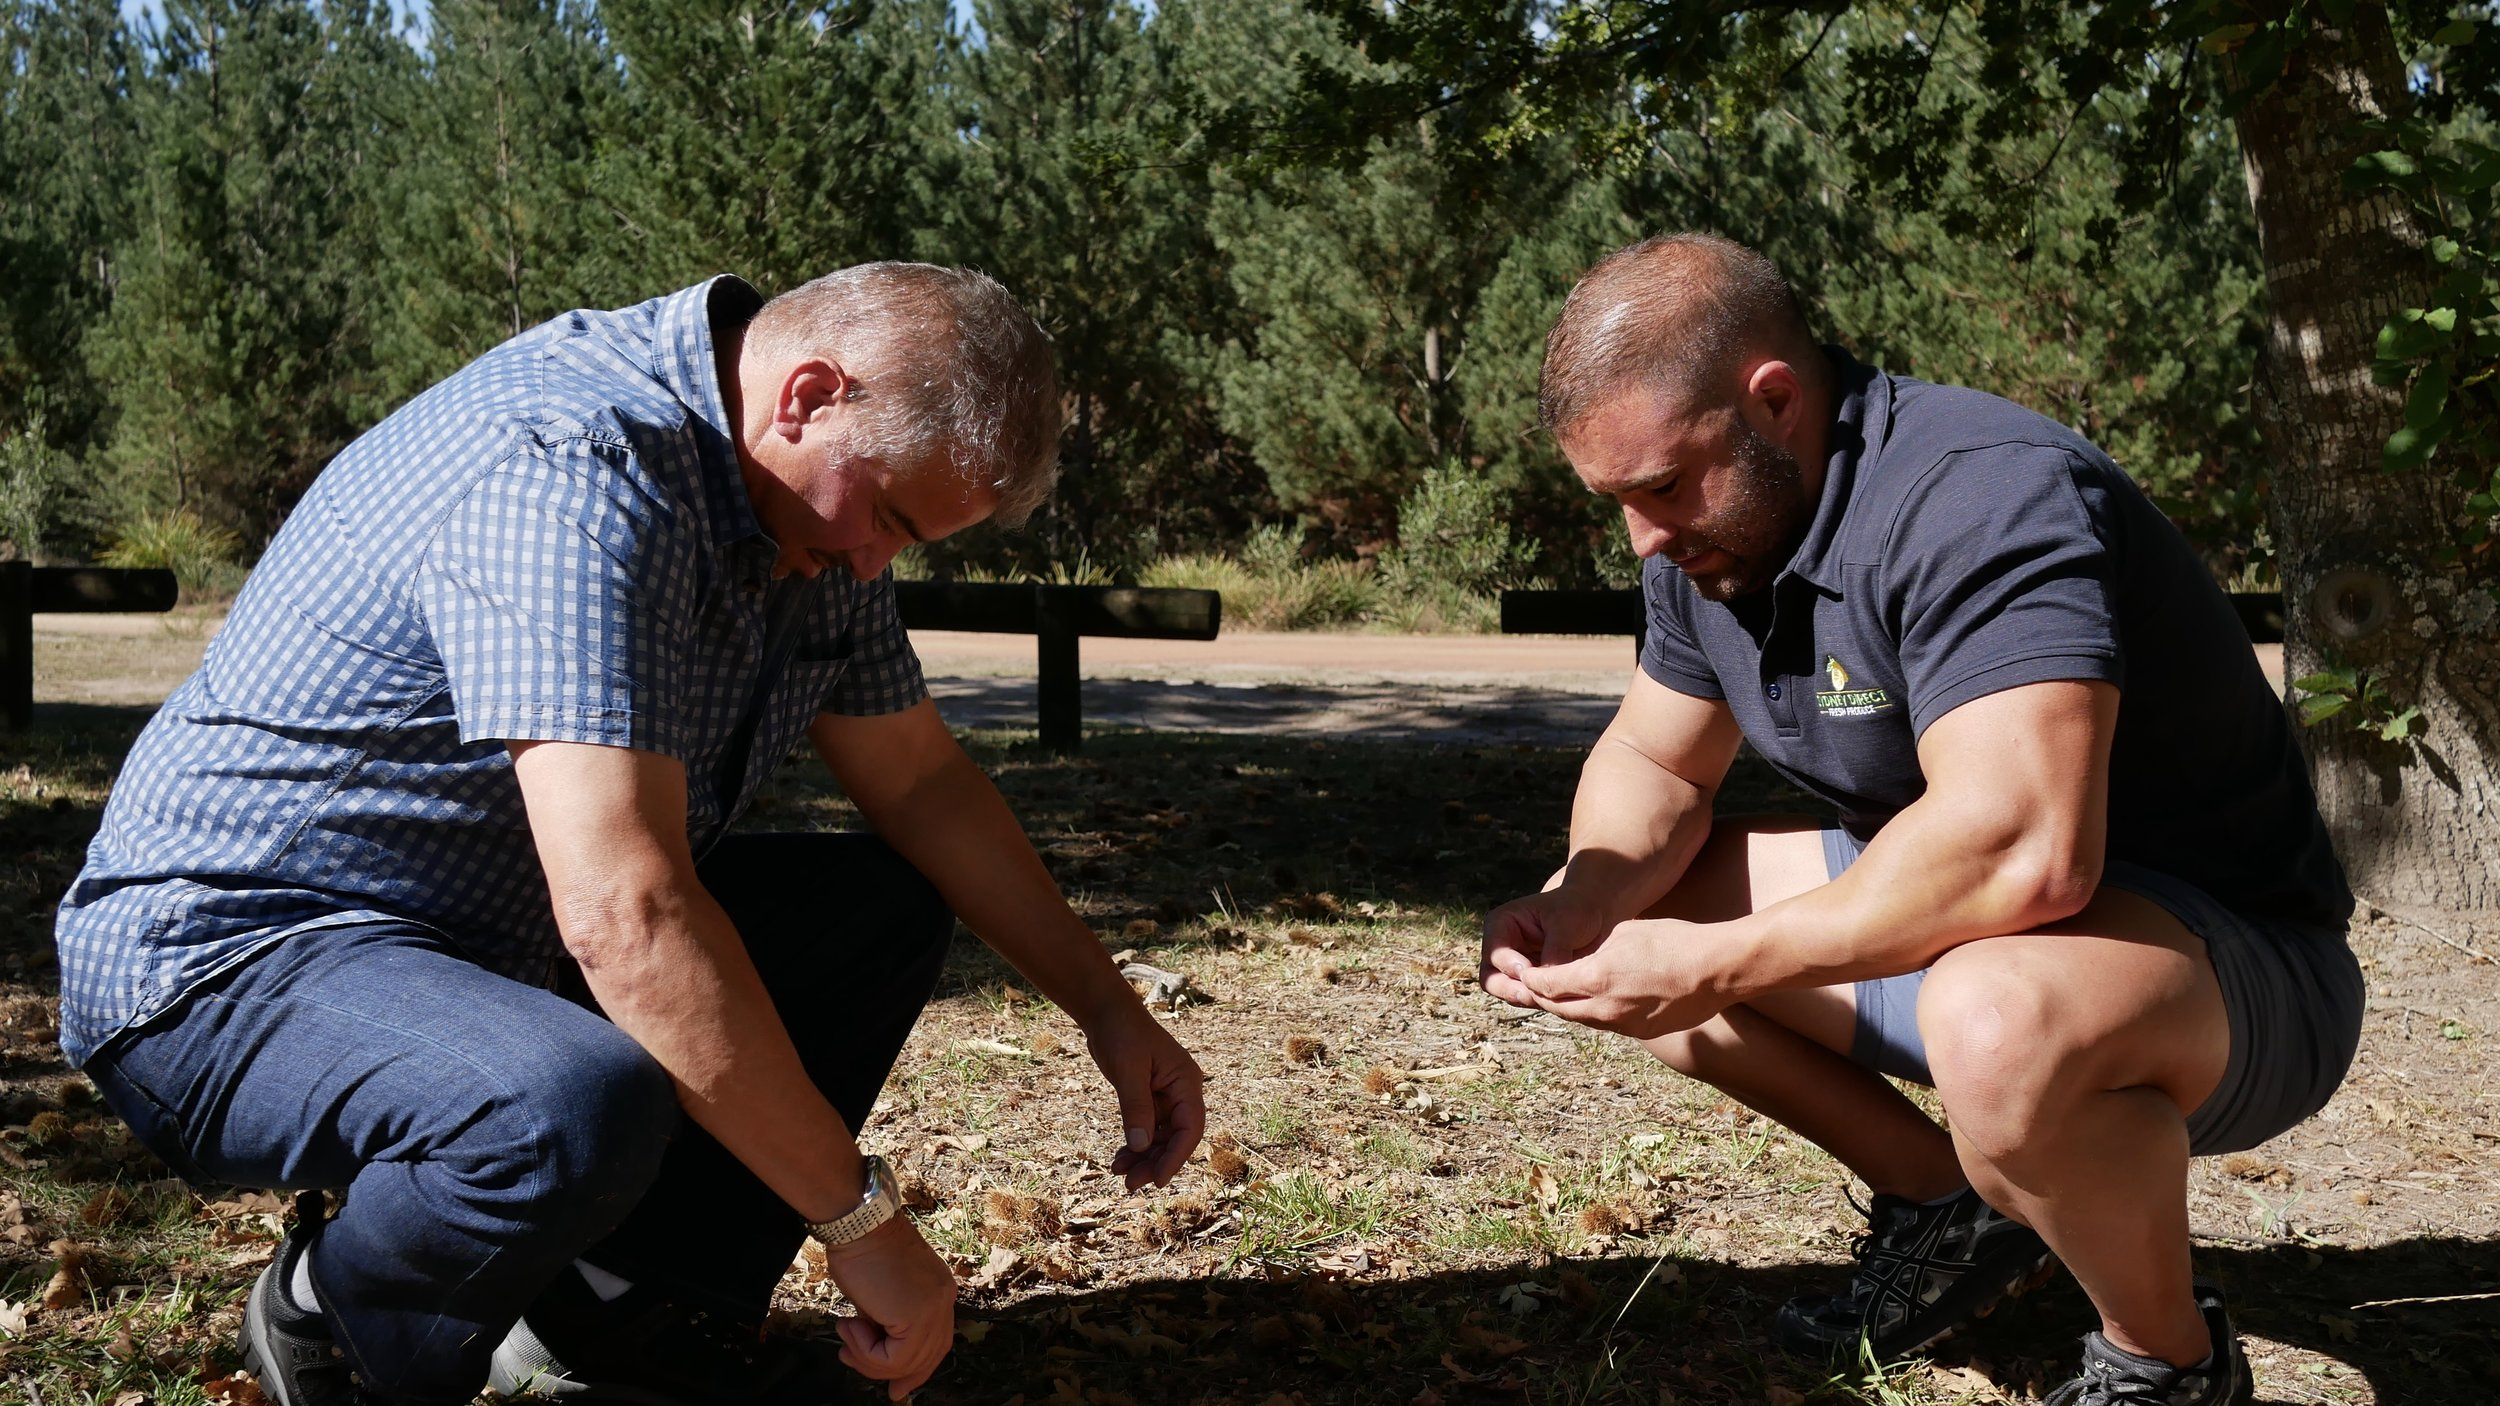 LUKE AND ACCOUNTS MANAGER ANTHONY FARRE HUNTING FOR PINE MUSHROOMS.